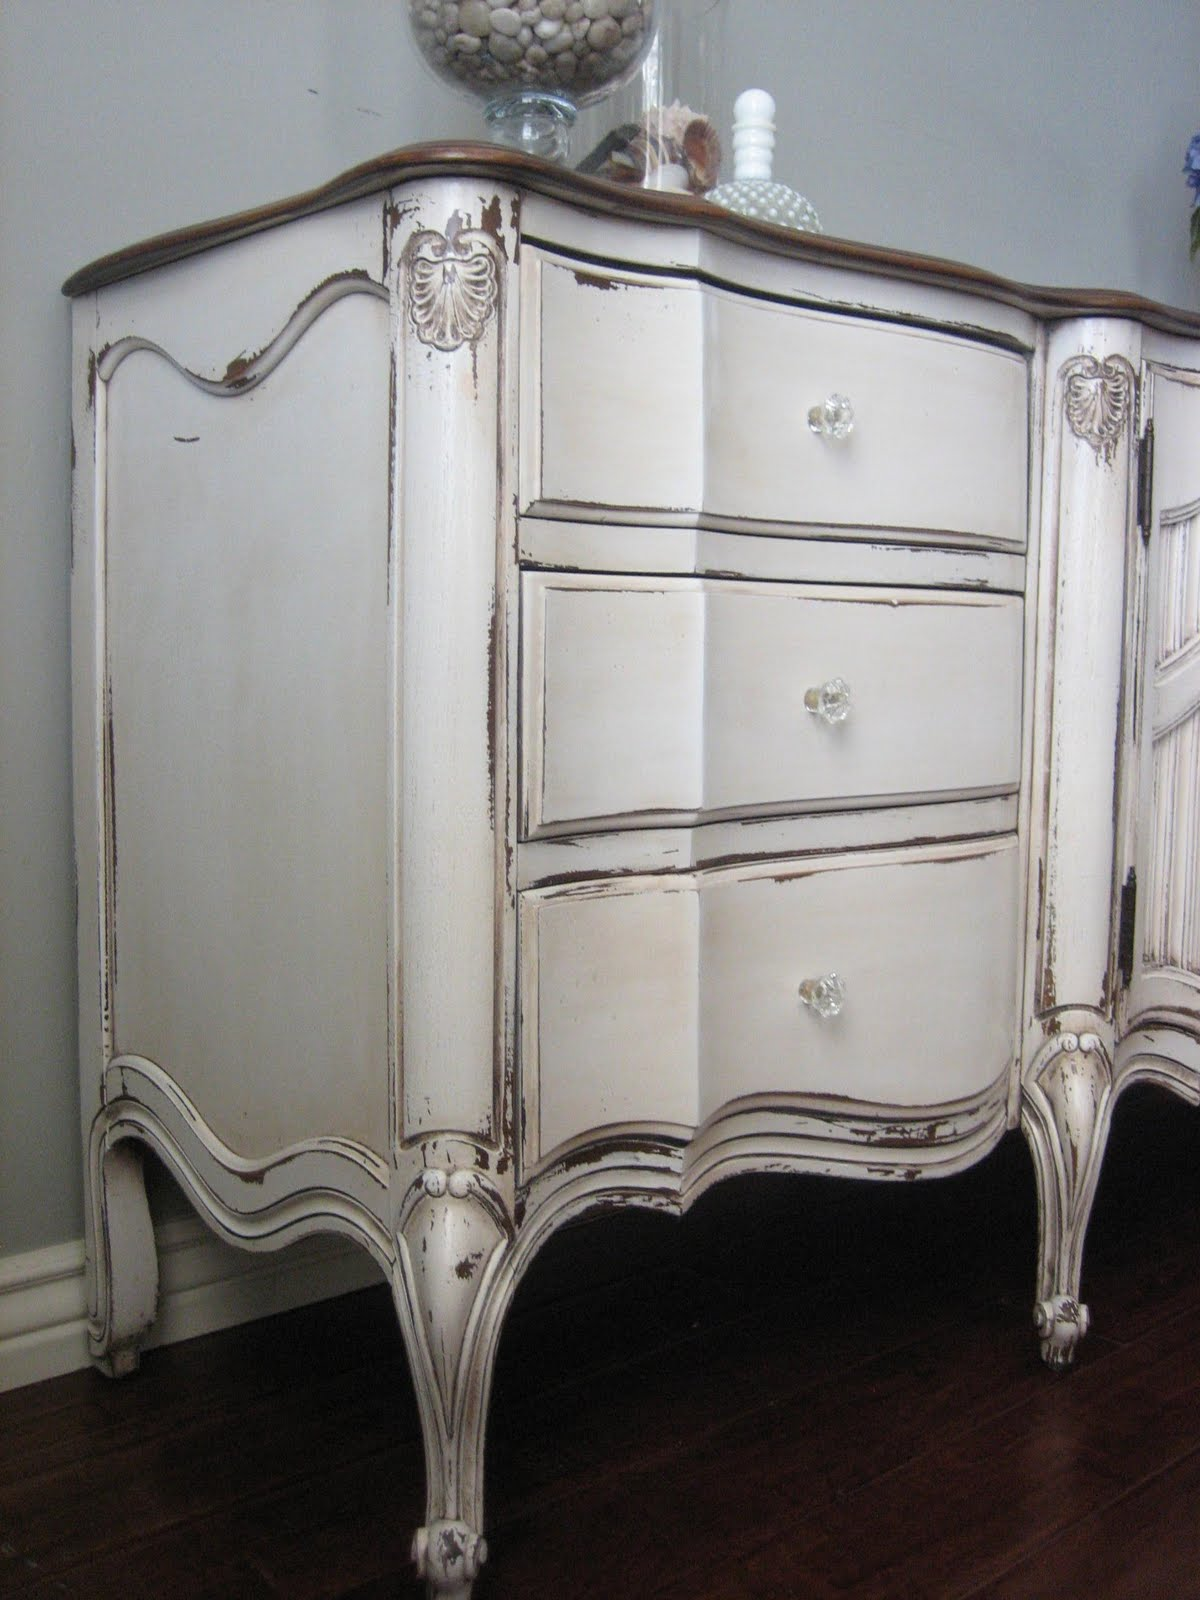 Provincial further grey painted french provincial bedroom furniture - Shabby Chic Country Cottage Old World Classic Traditional Euro European Paint Finishes Refinishing Furniture Repurpose Chandler Az Arizona East Valley